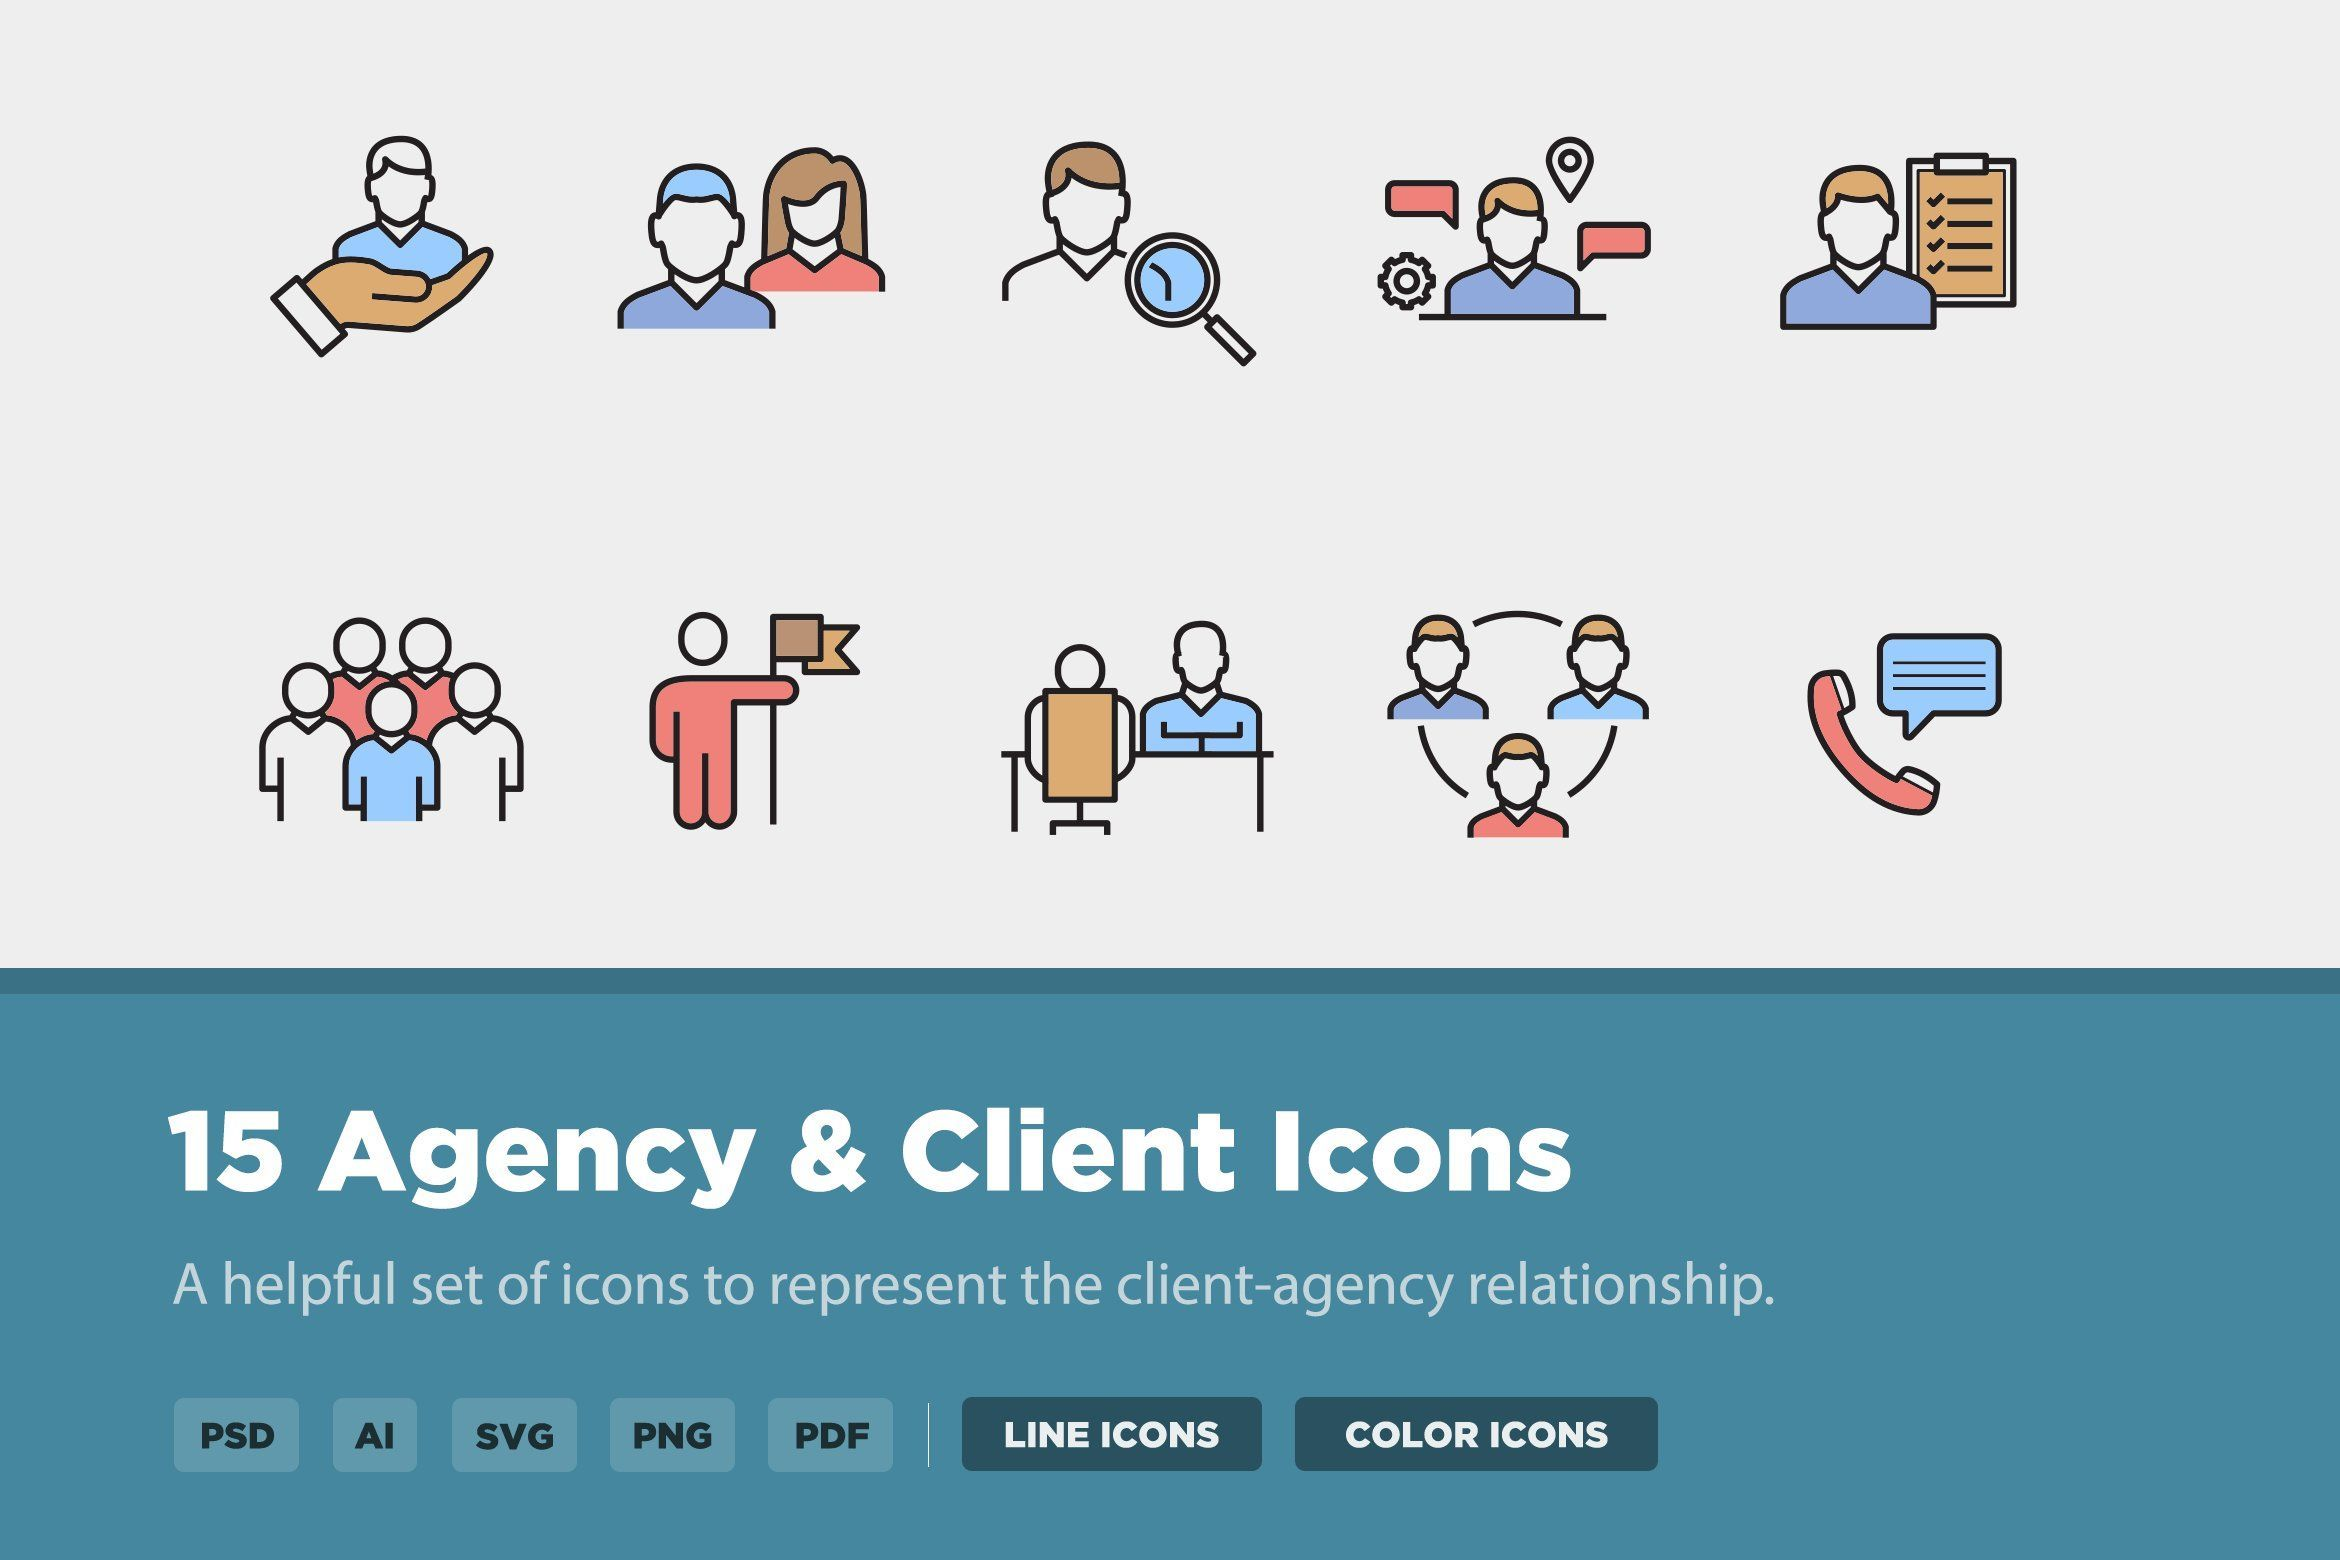 Agency & Client Icon Pack. A helpful set of icons to